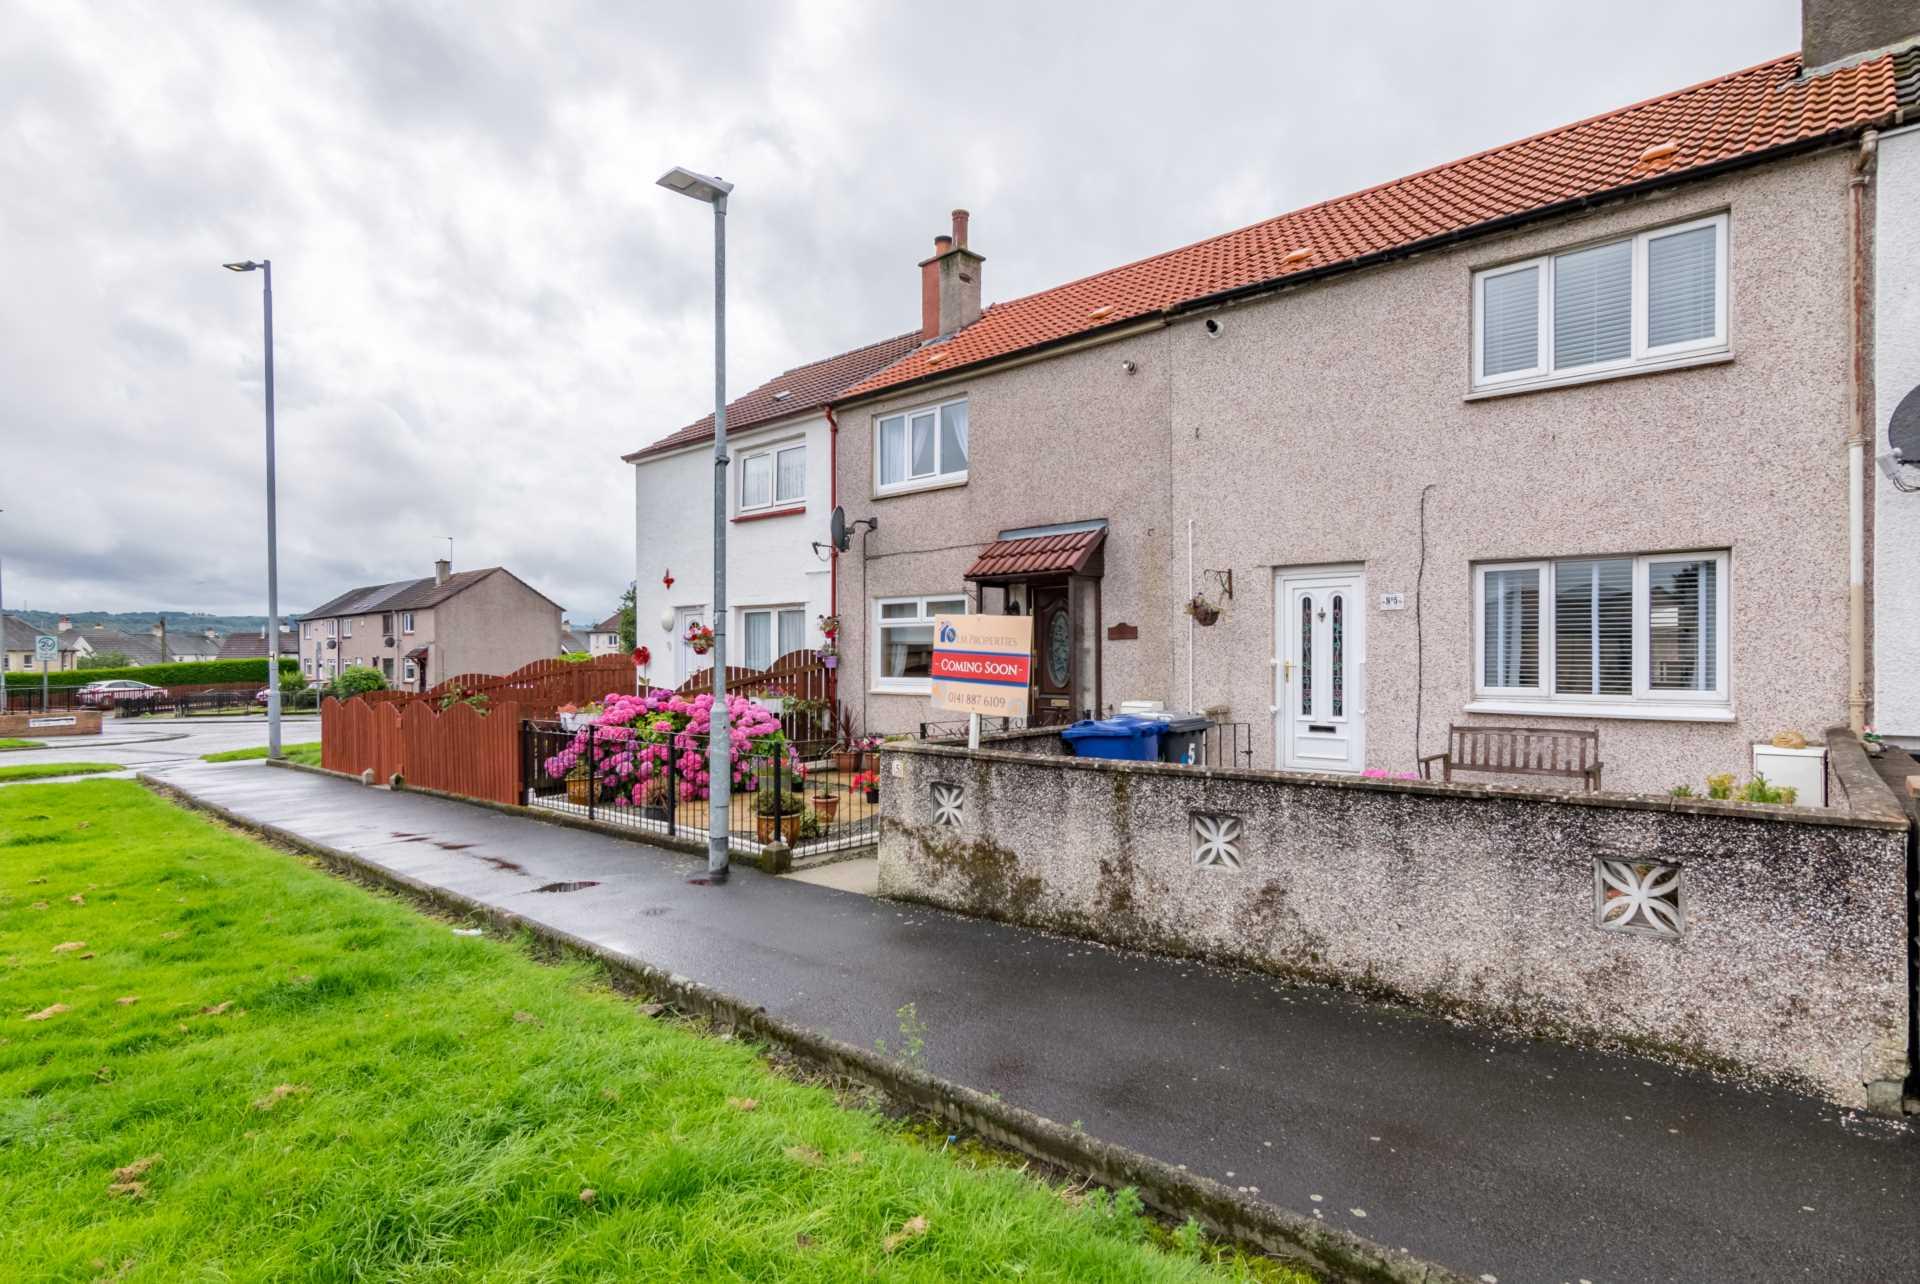 2 bedroom house for sale kilbrennan road paisley pa3 3rg for Paisley house